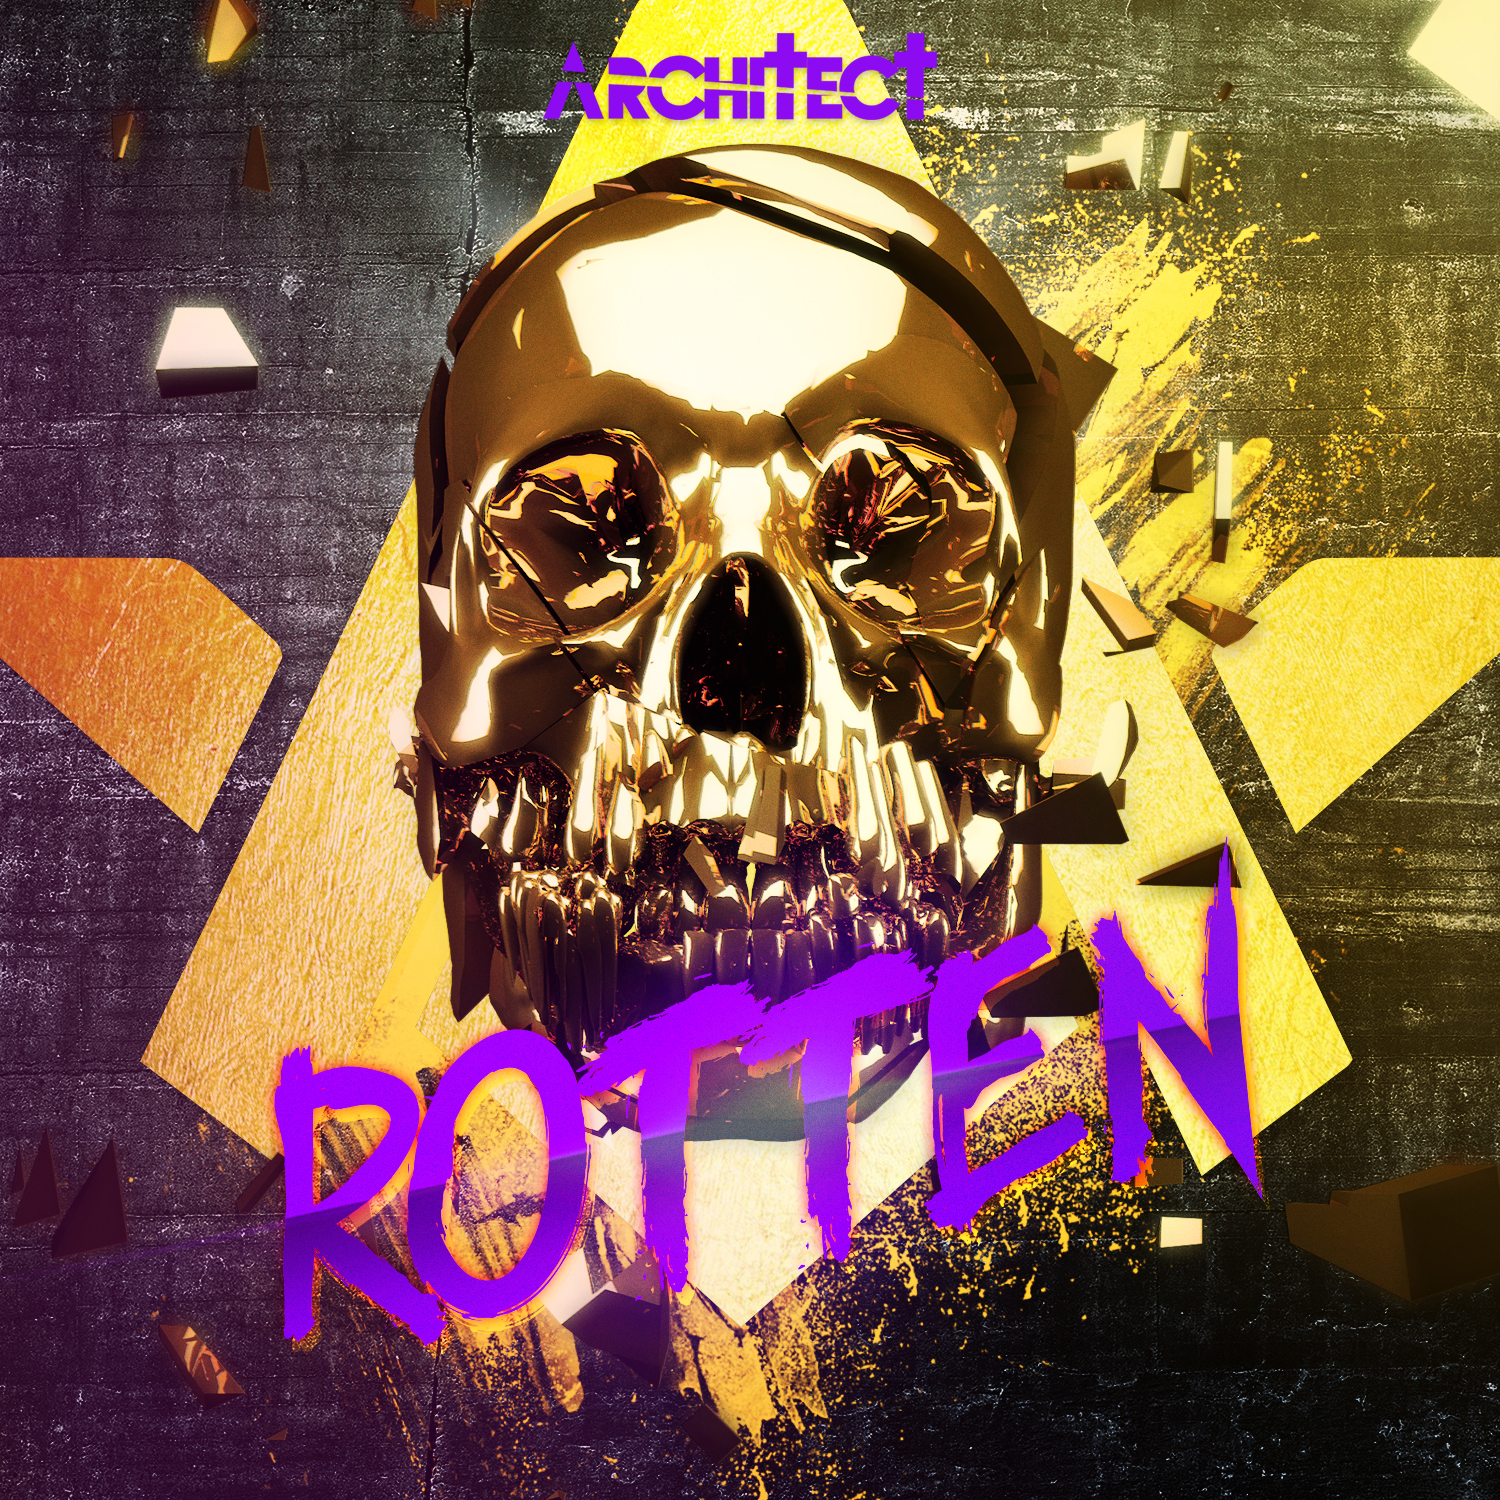 Architect - Rotten (Original Mix)